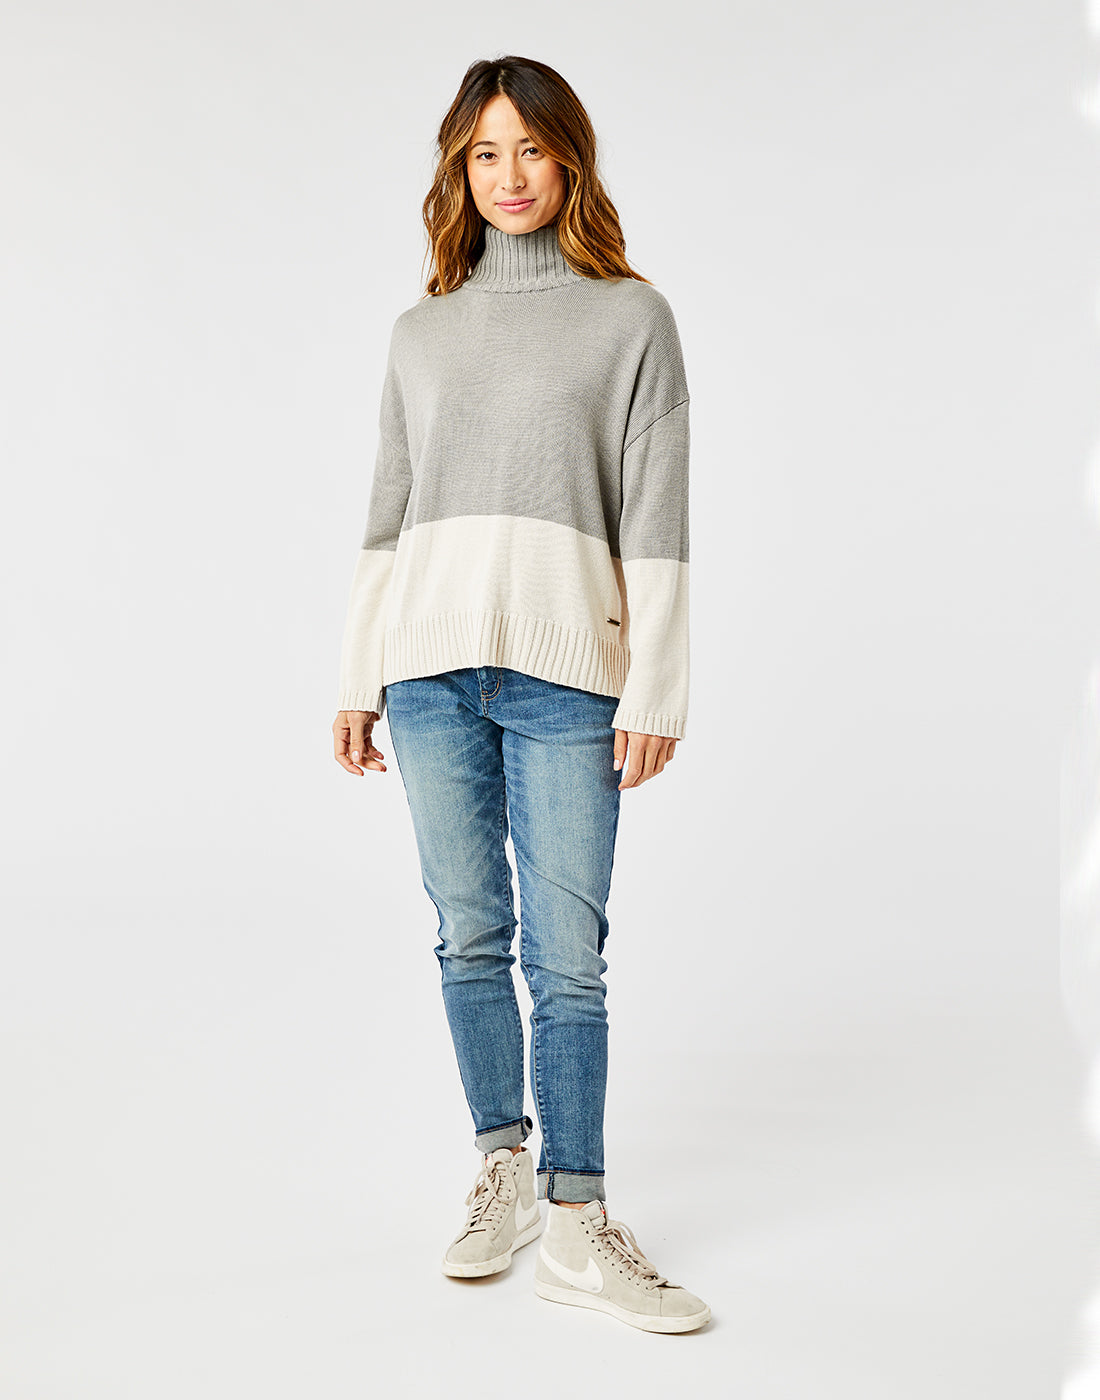 Montrose Turtleneck: Limestone Heather